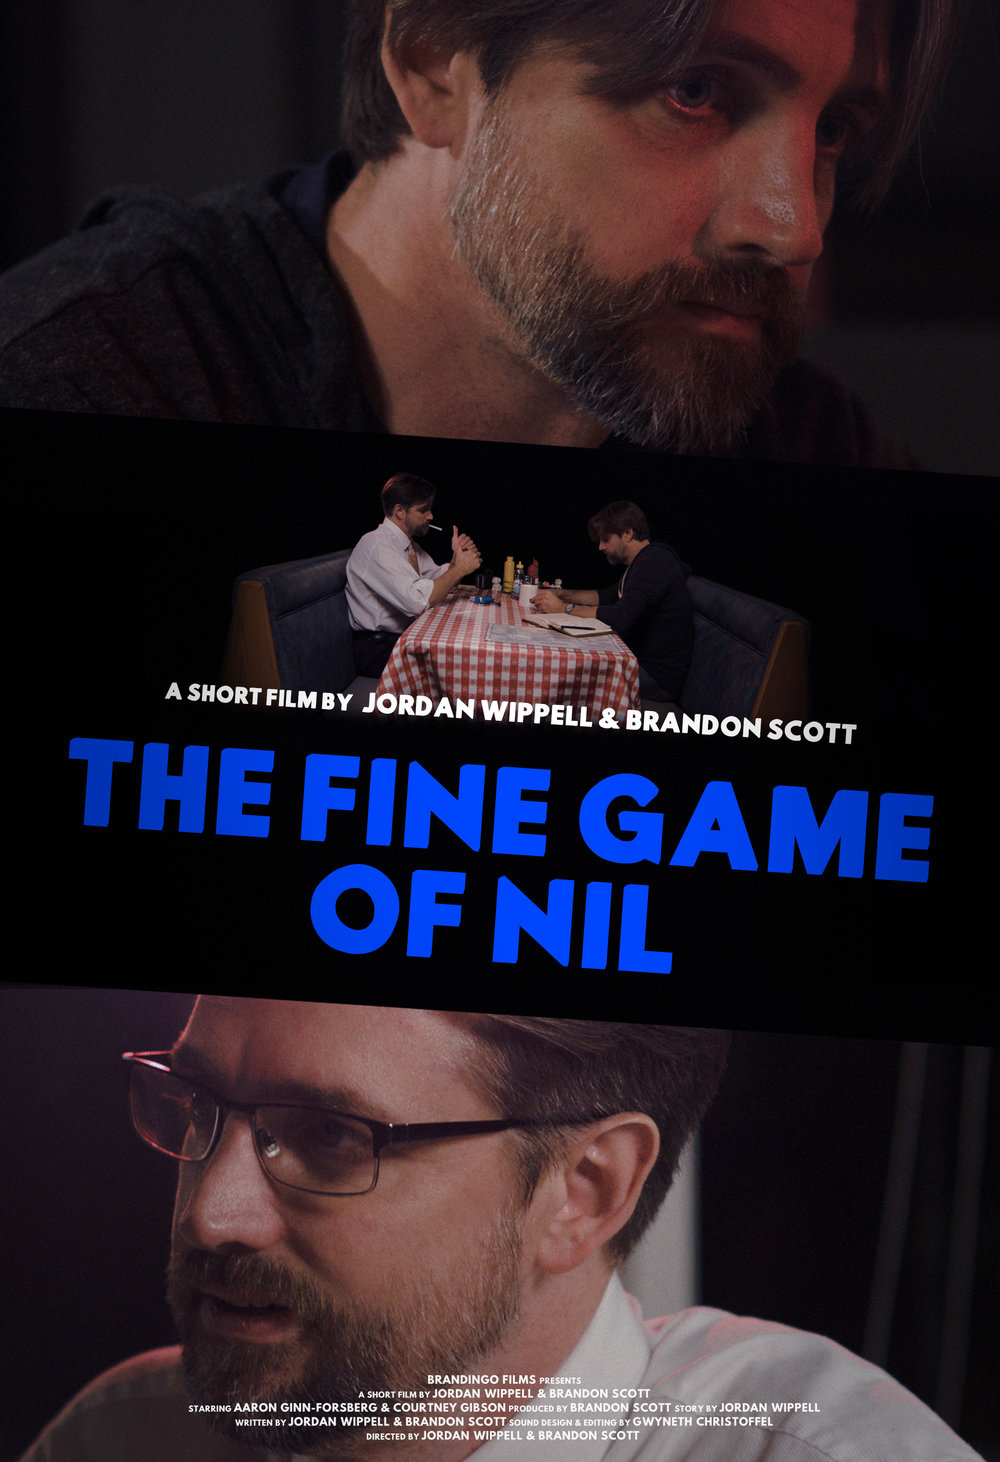 The Fine Game of Nil (2015) - Director/Producer